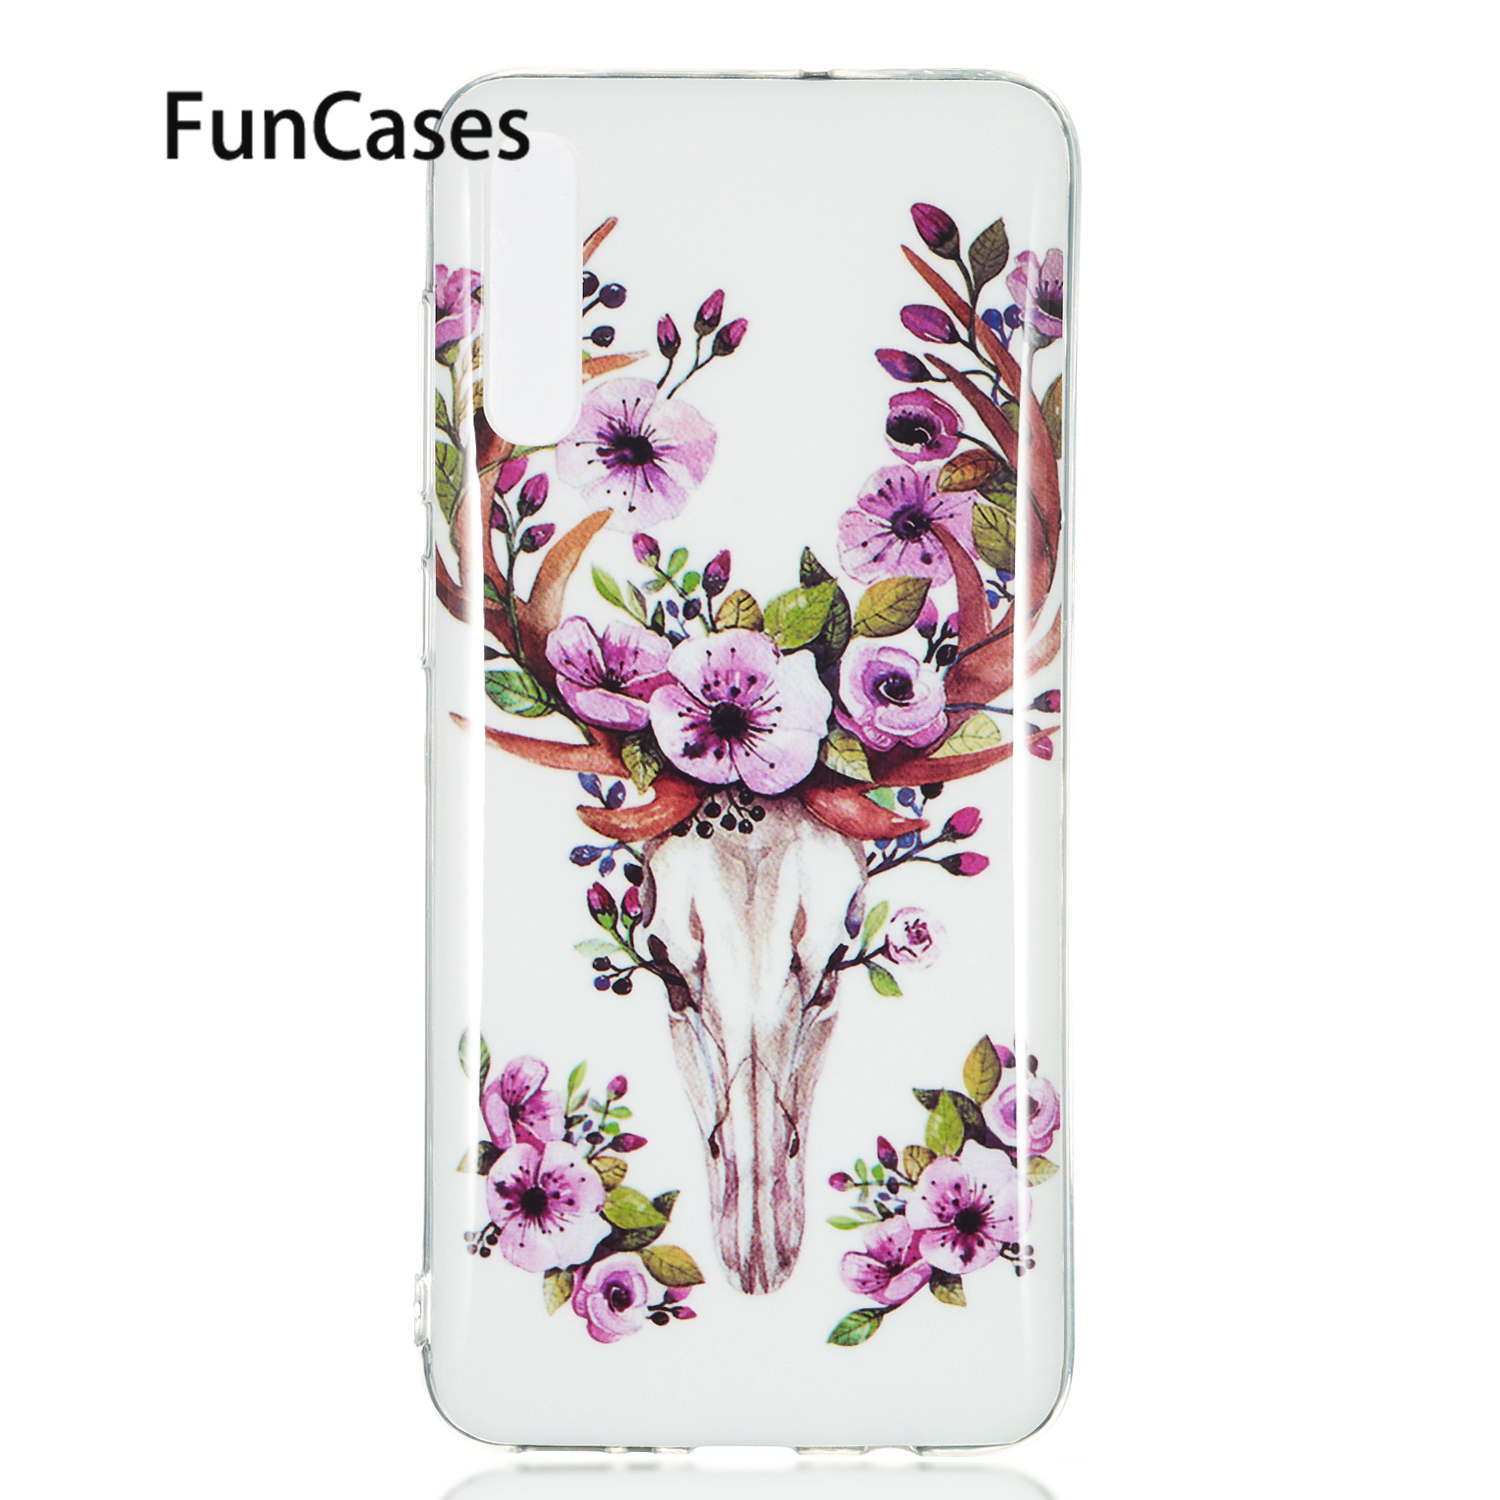 Wind Chimes Soft TPU Shell For <font><b>hoesje</b></font> <font><b>Samsung</b></font> <font><b>A70</b></font> Ajax Squishy Glitter Case Caso sFor <font><b>Samsung</b></font> Galaxy ajax <font><b>A70</b></font> Mobile Phone Shell image